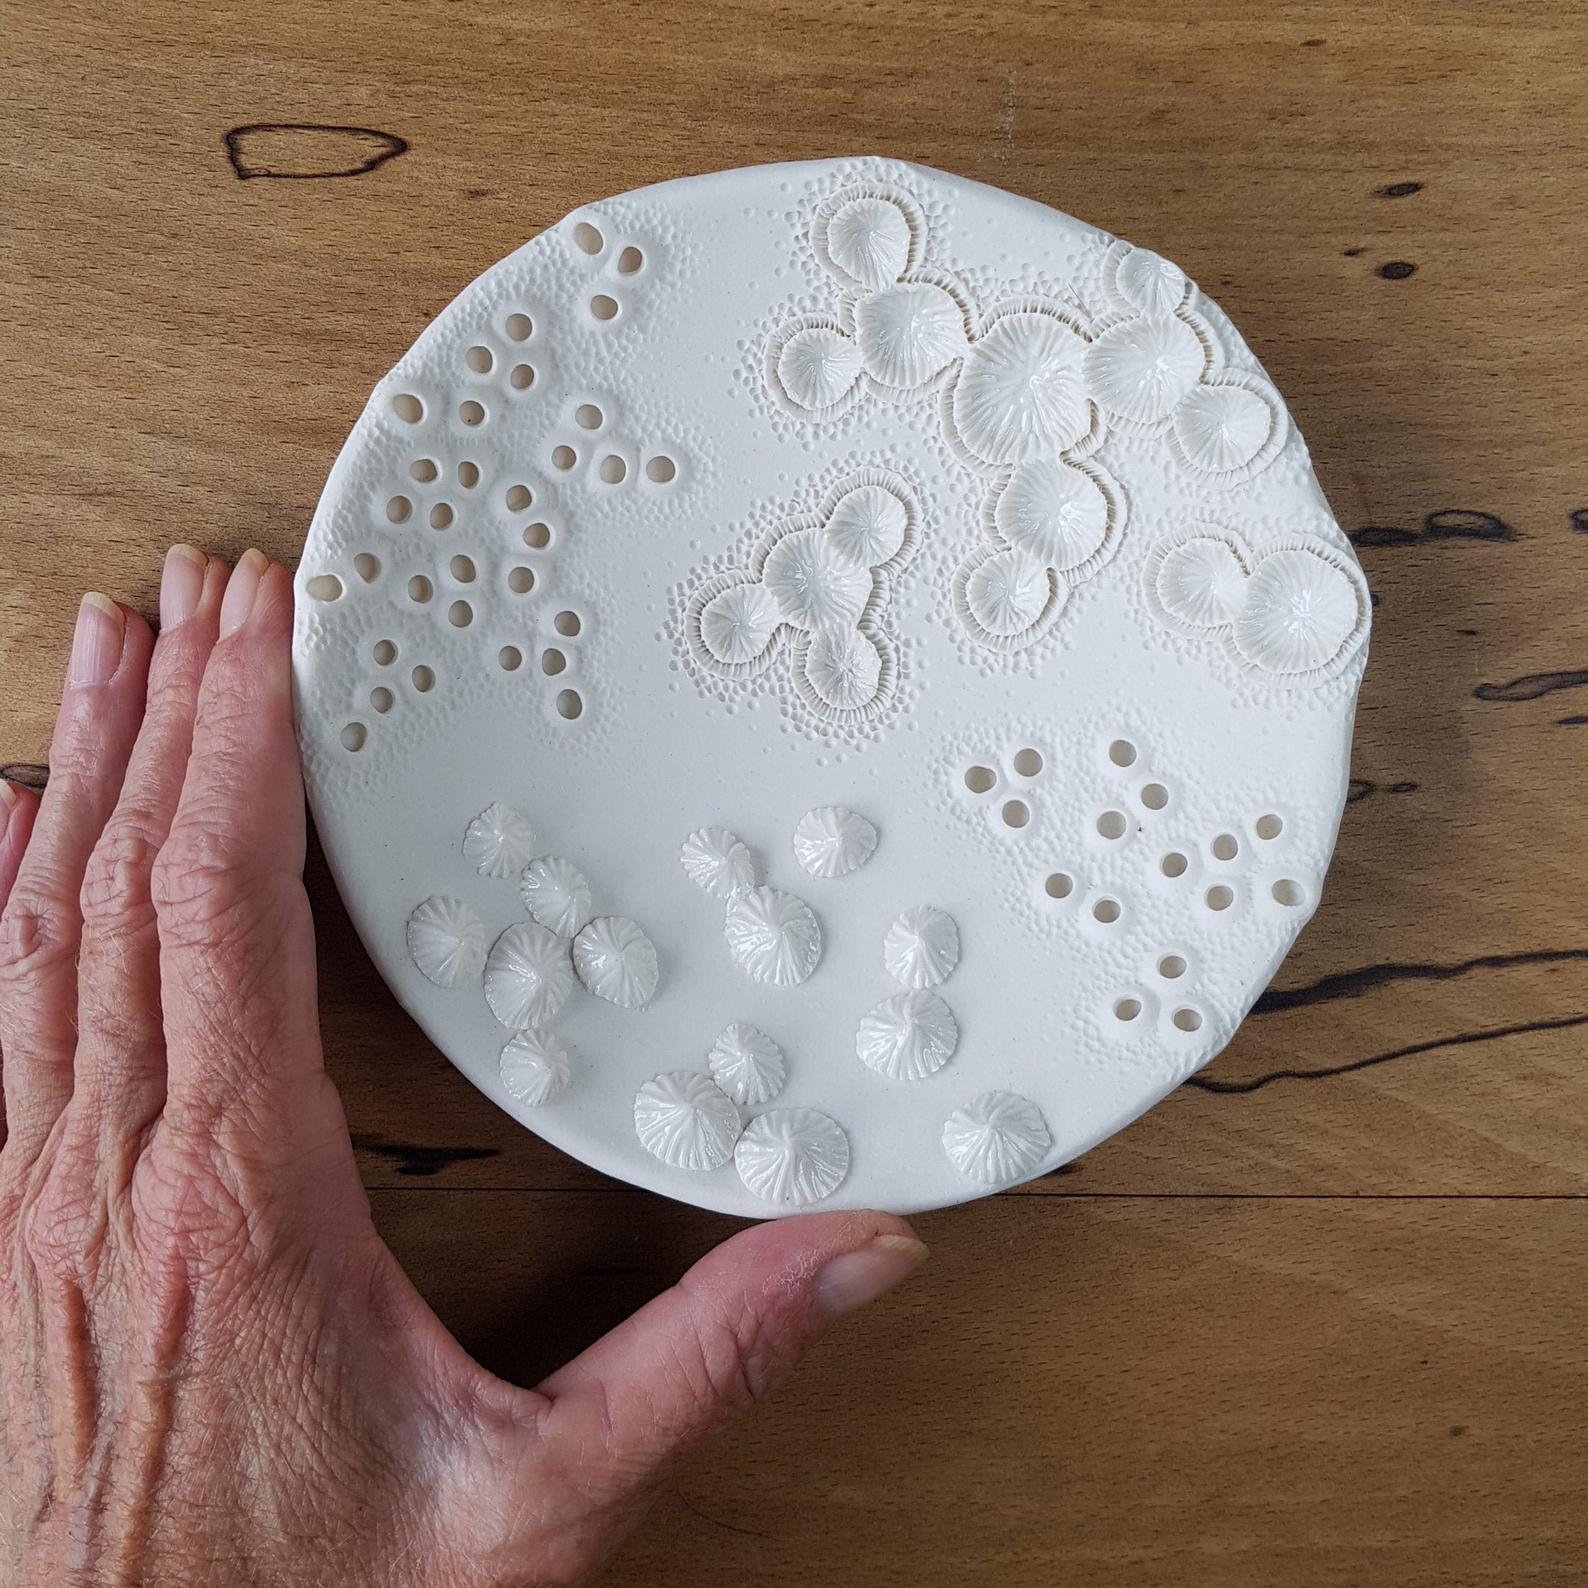 Mairi Stone Sets Aside A Spare Bedroom For Her Paper Clay Ceramics Tiny Workshops